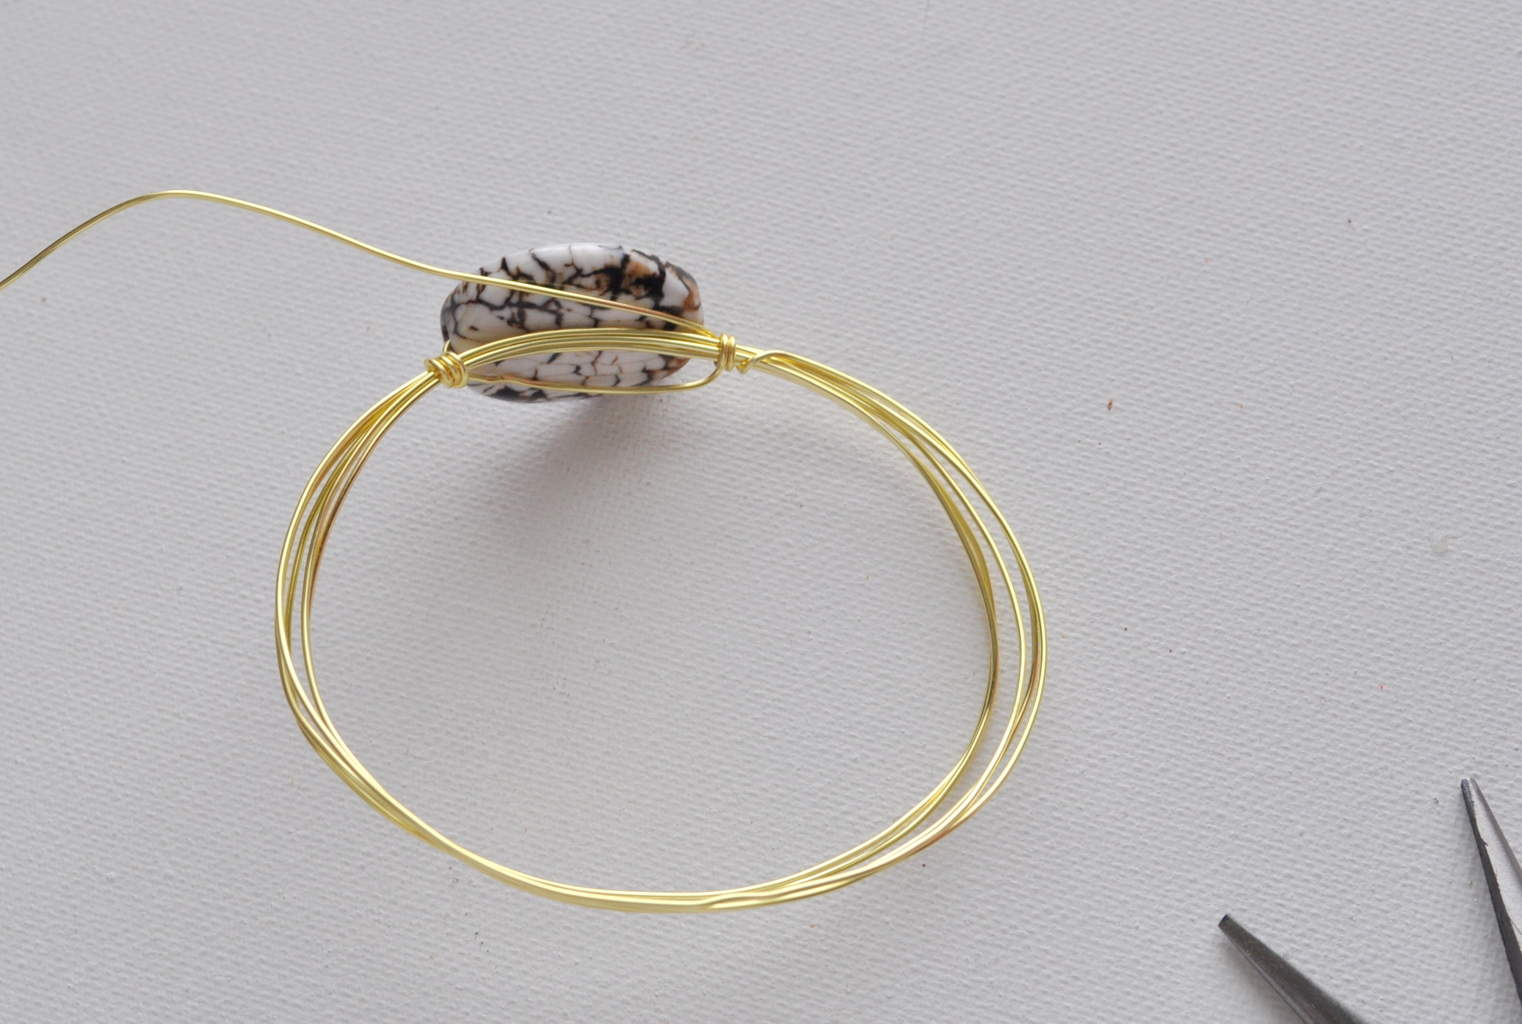 How to Make Wire Rings (with Pictures)